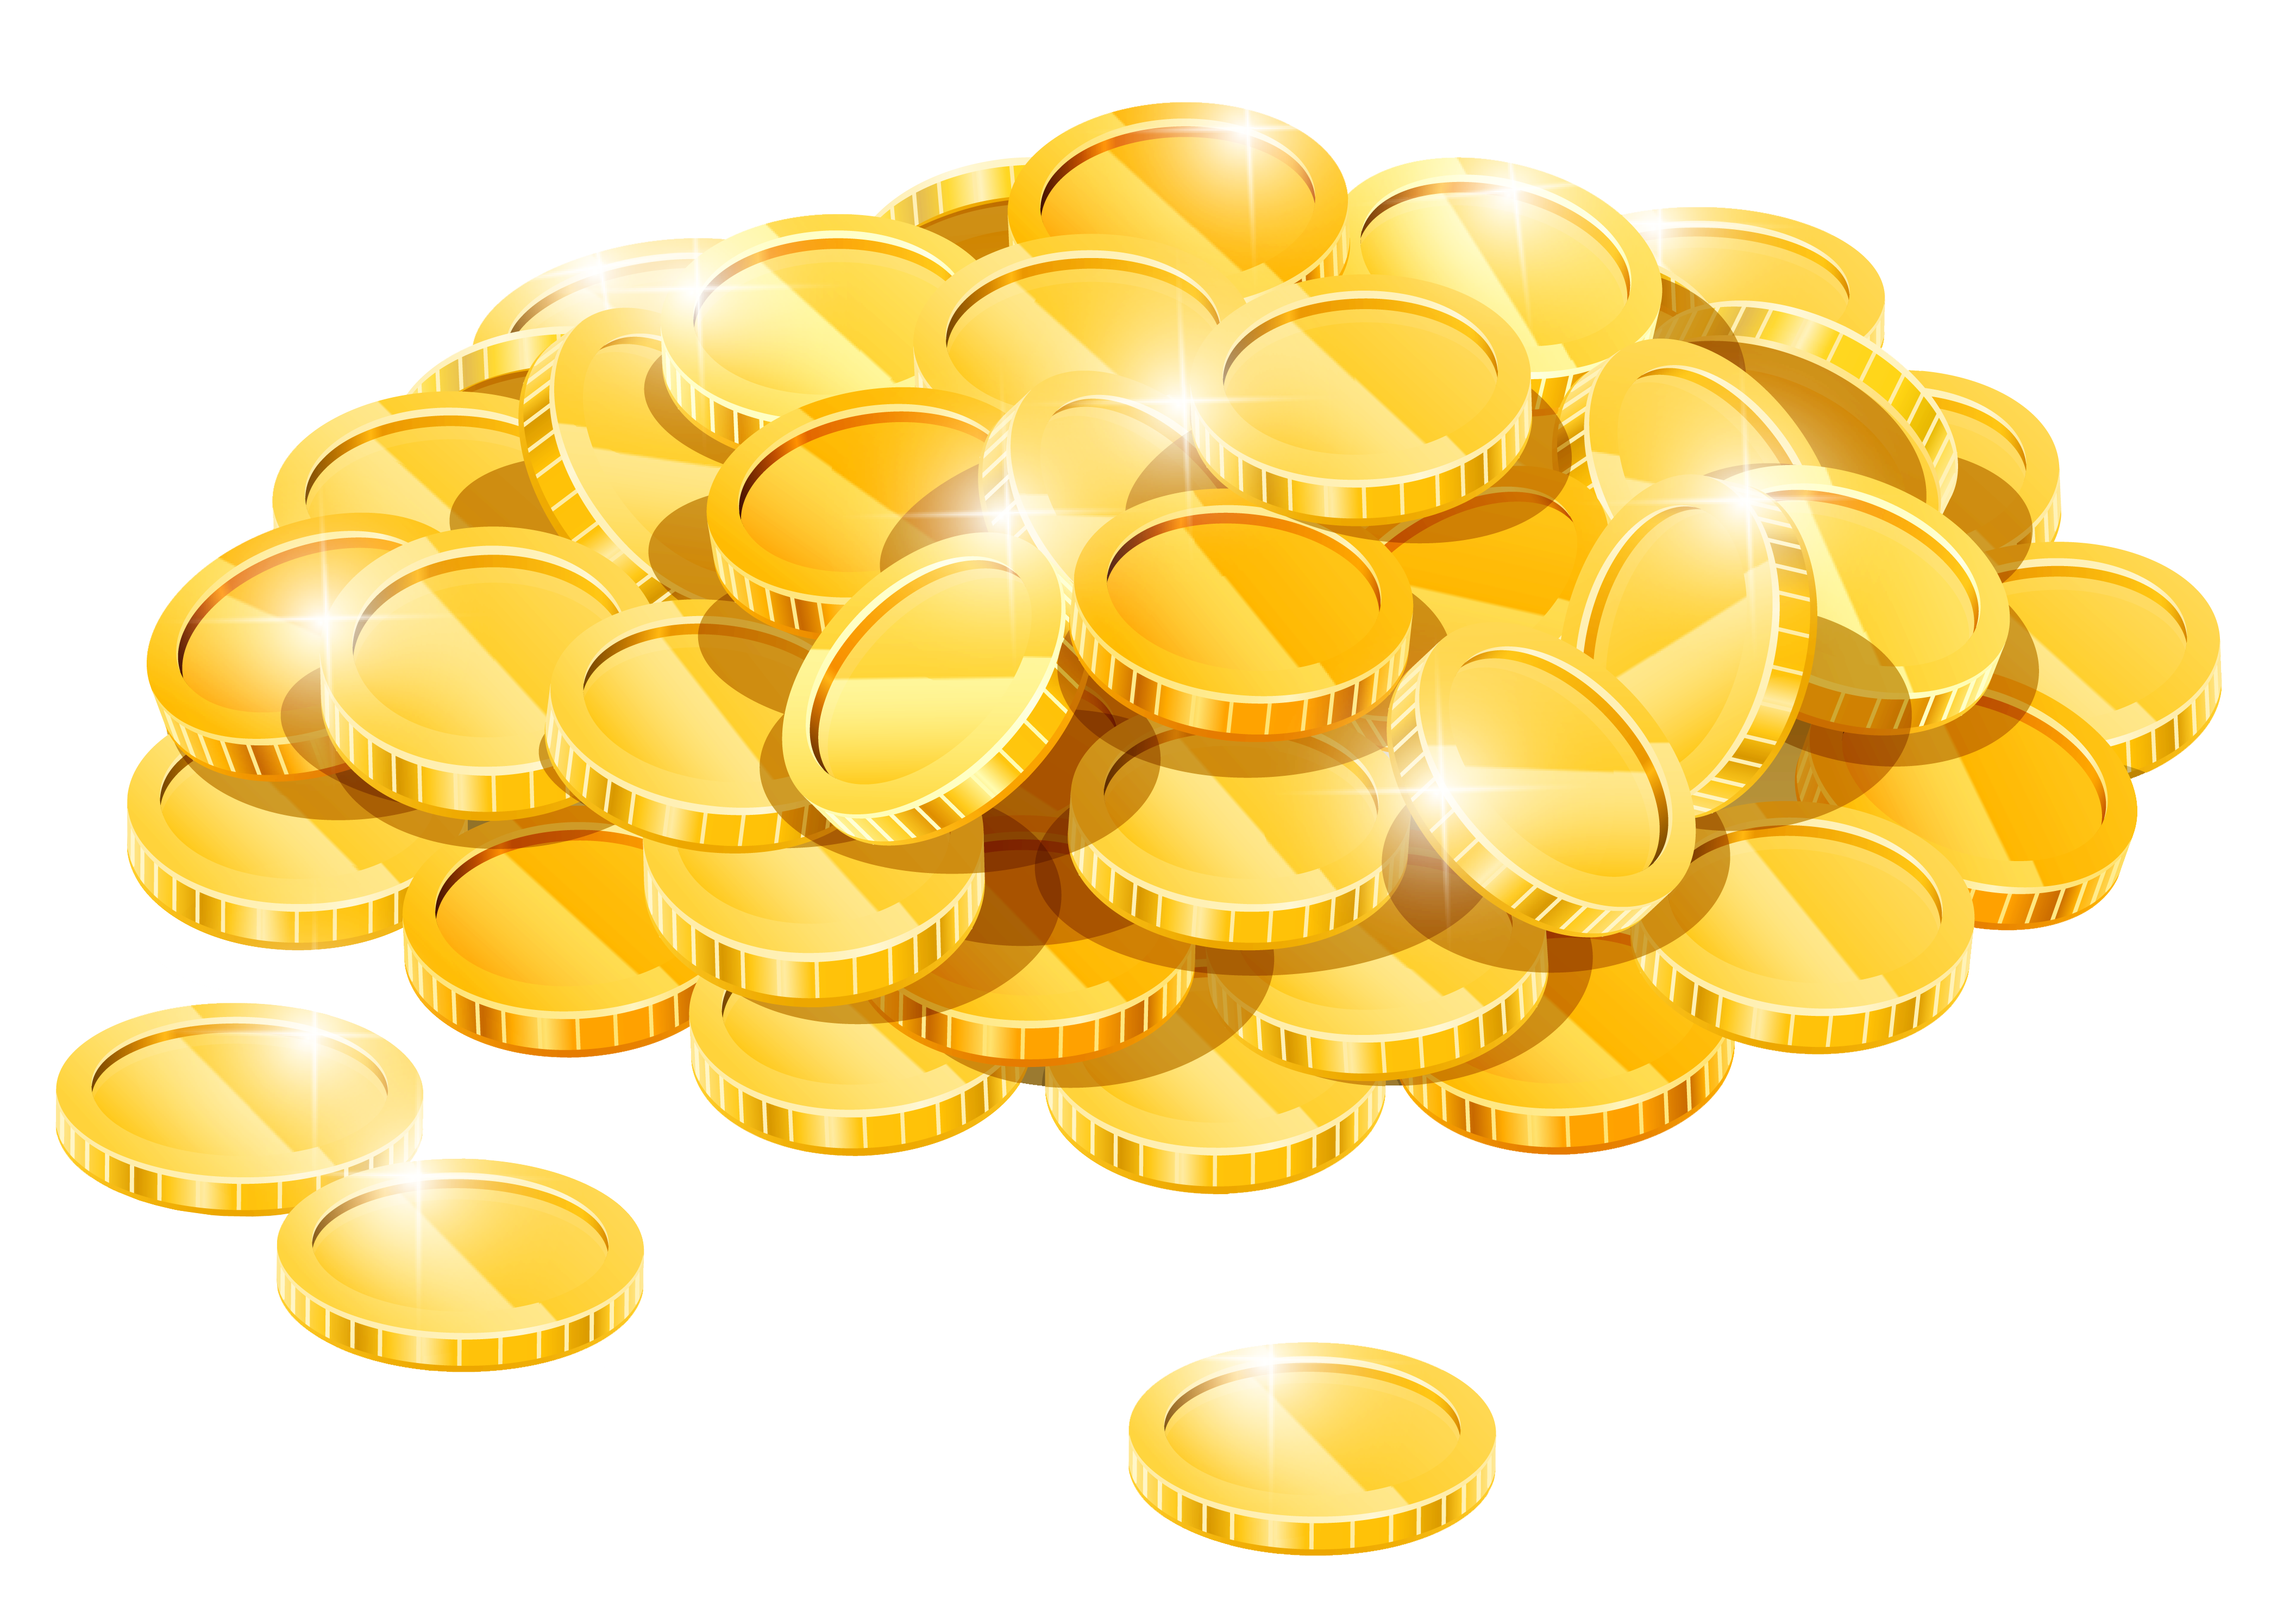 gold coins clipart cliparts download images #16585